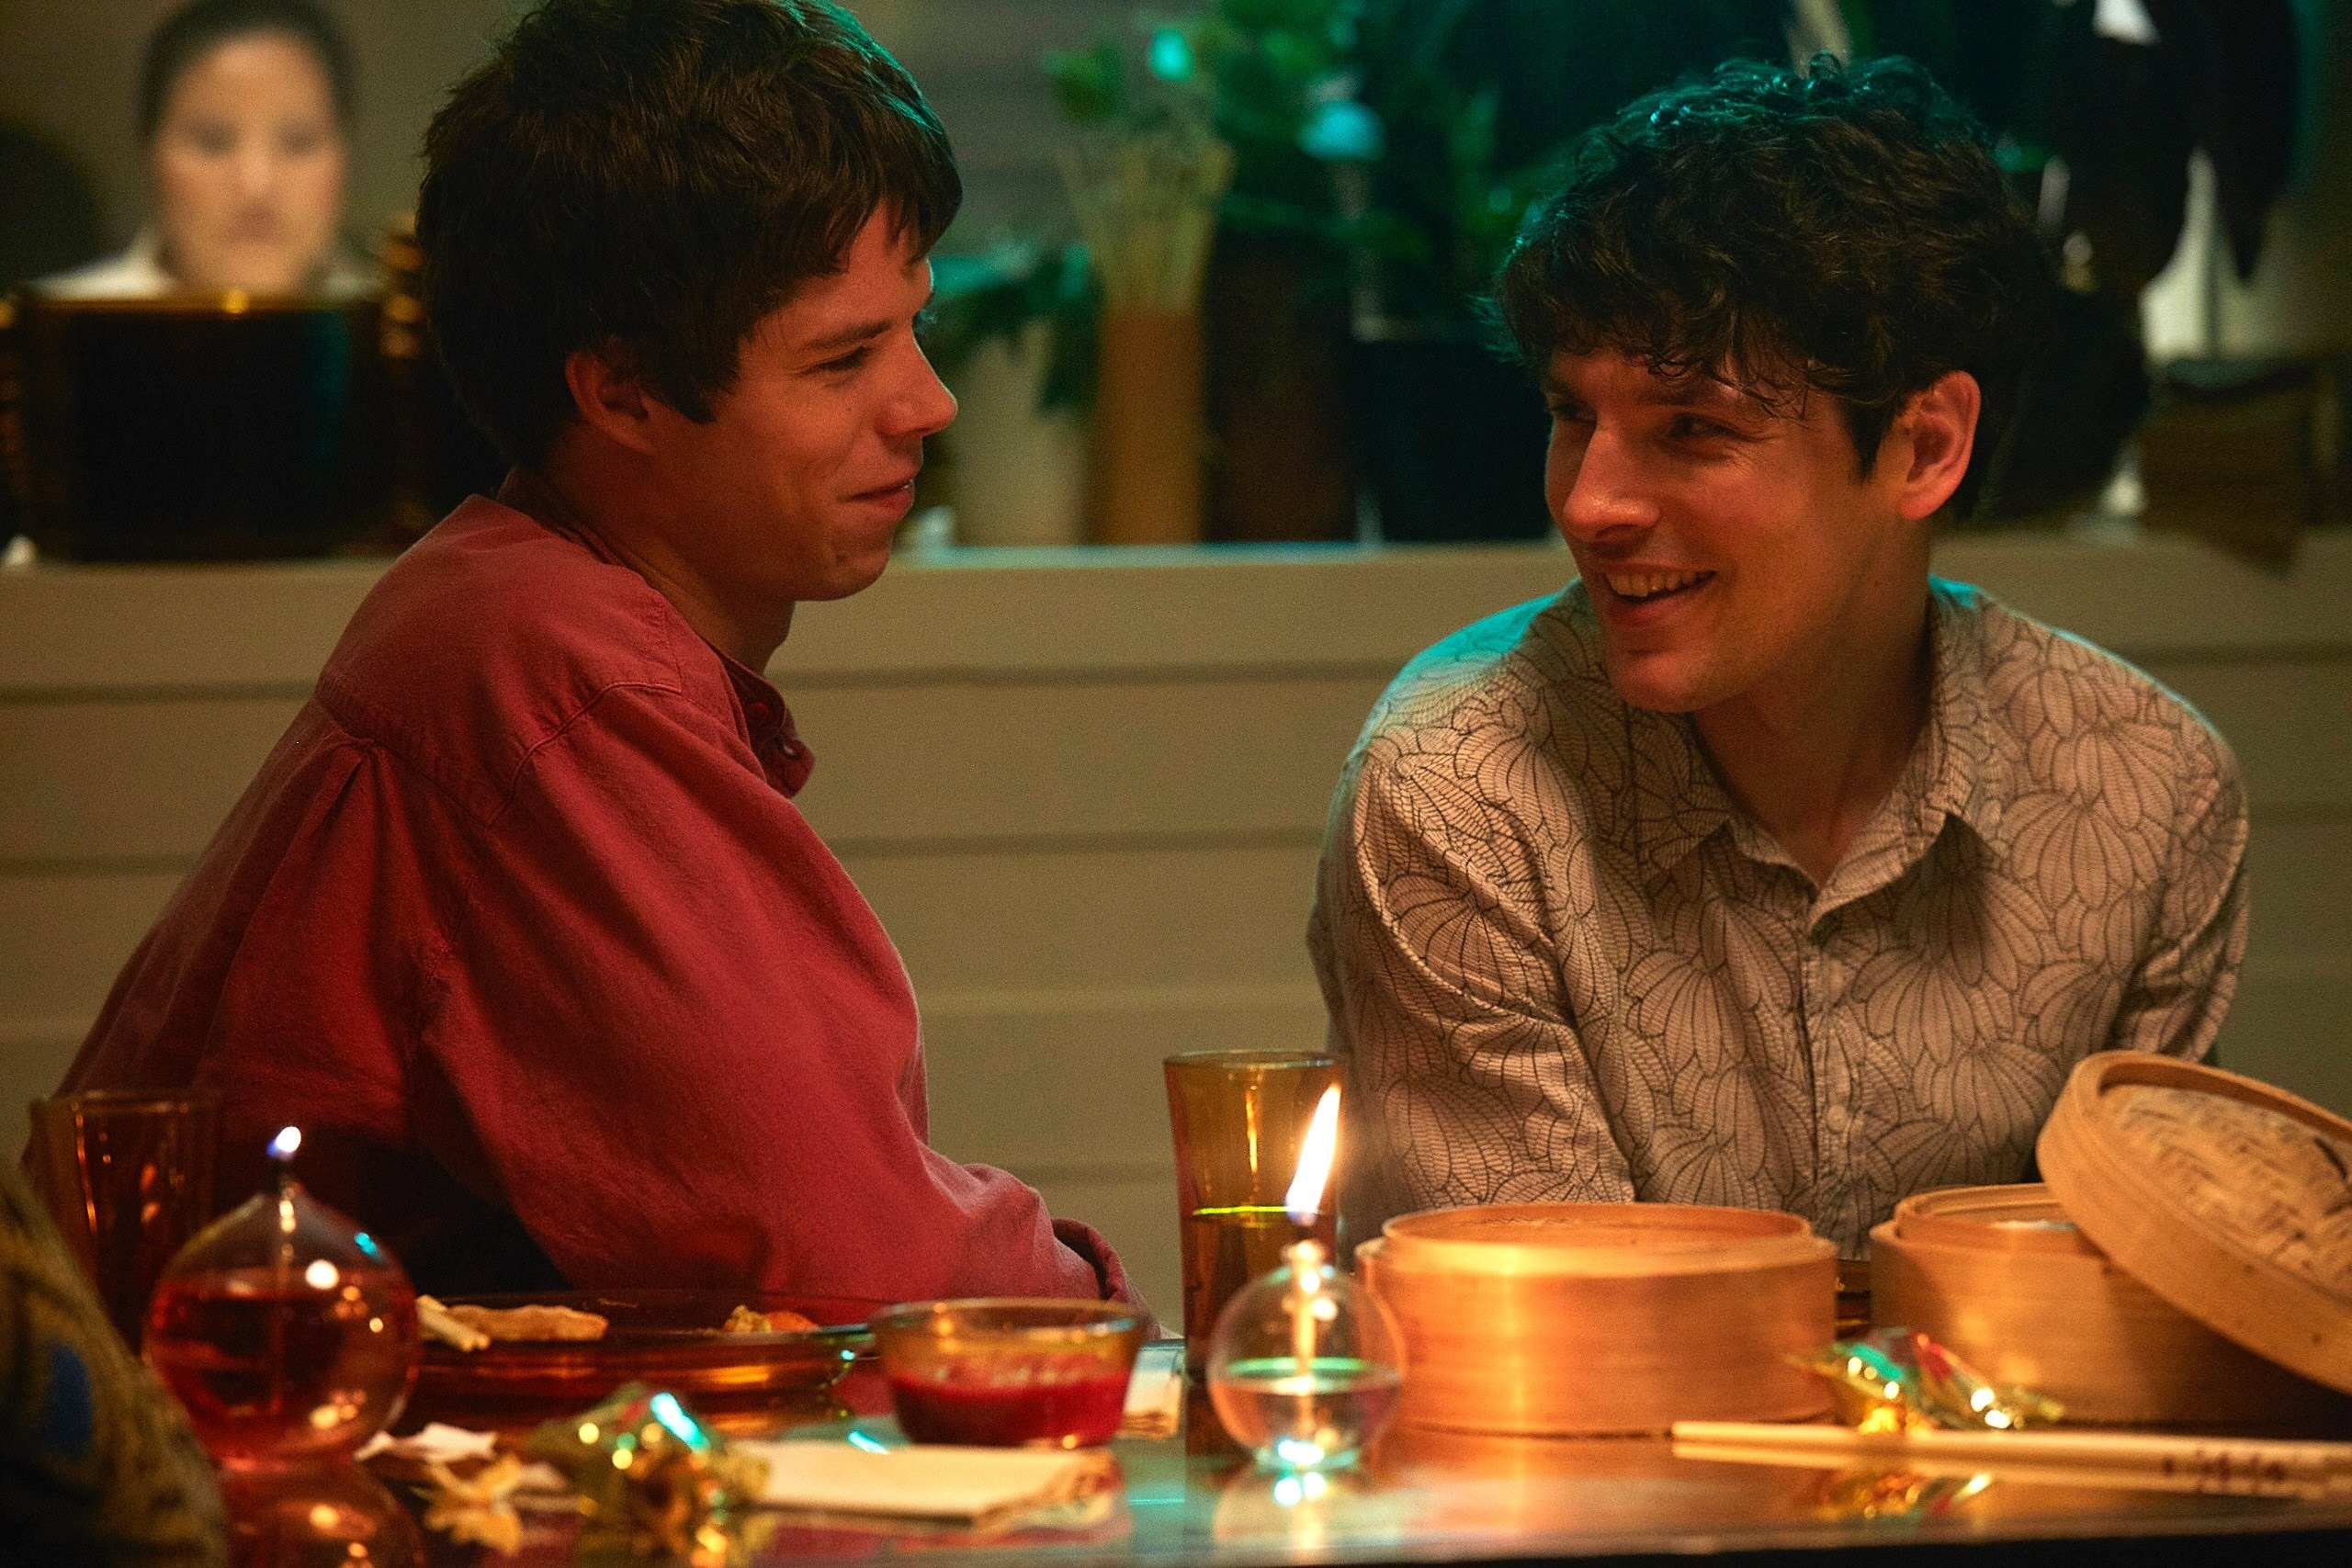 First trailer for Benjamin, Simon Amstell's feature film debut, arrives online